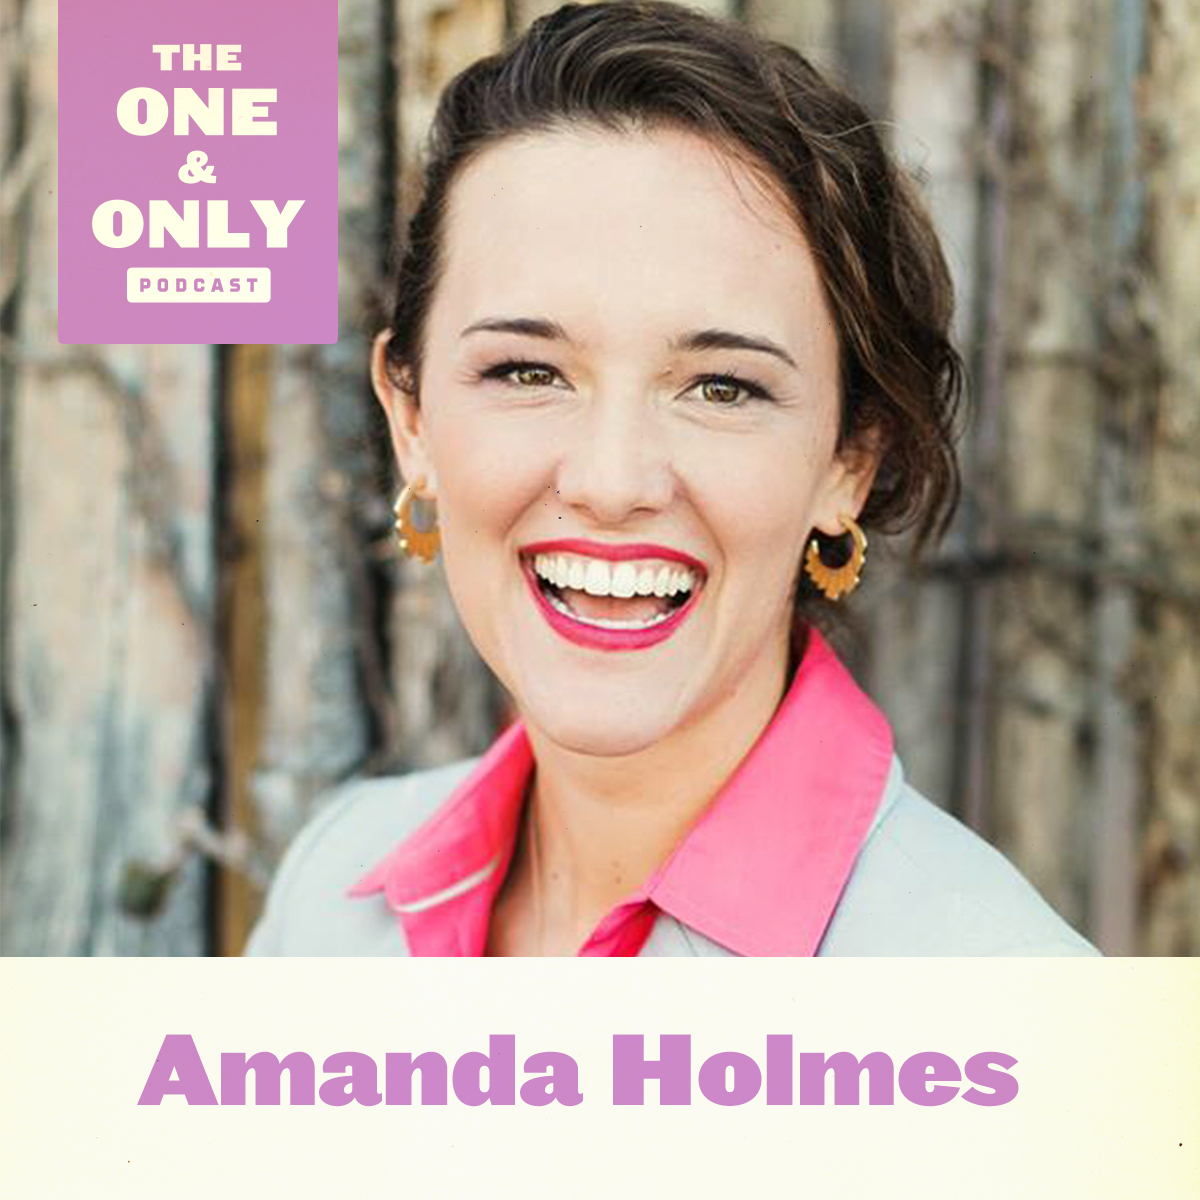 Amanda Holmes Interview | Are You Being Real? Amanda Holmes